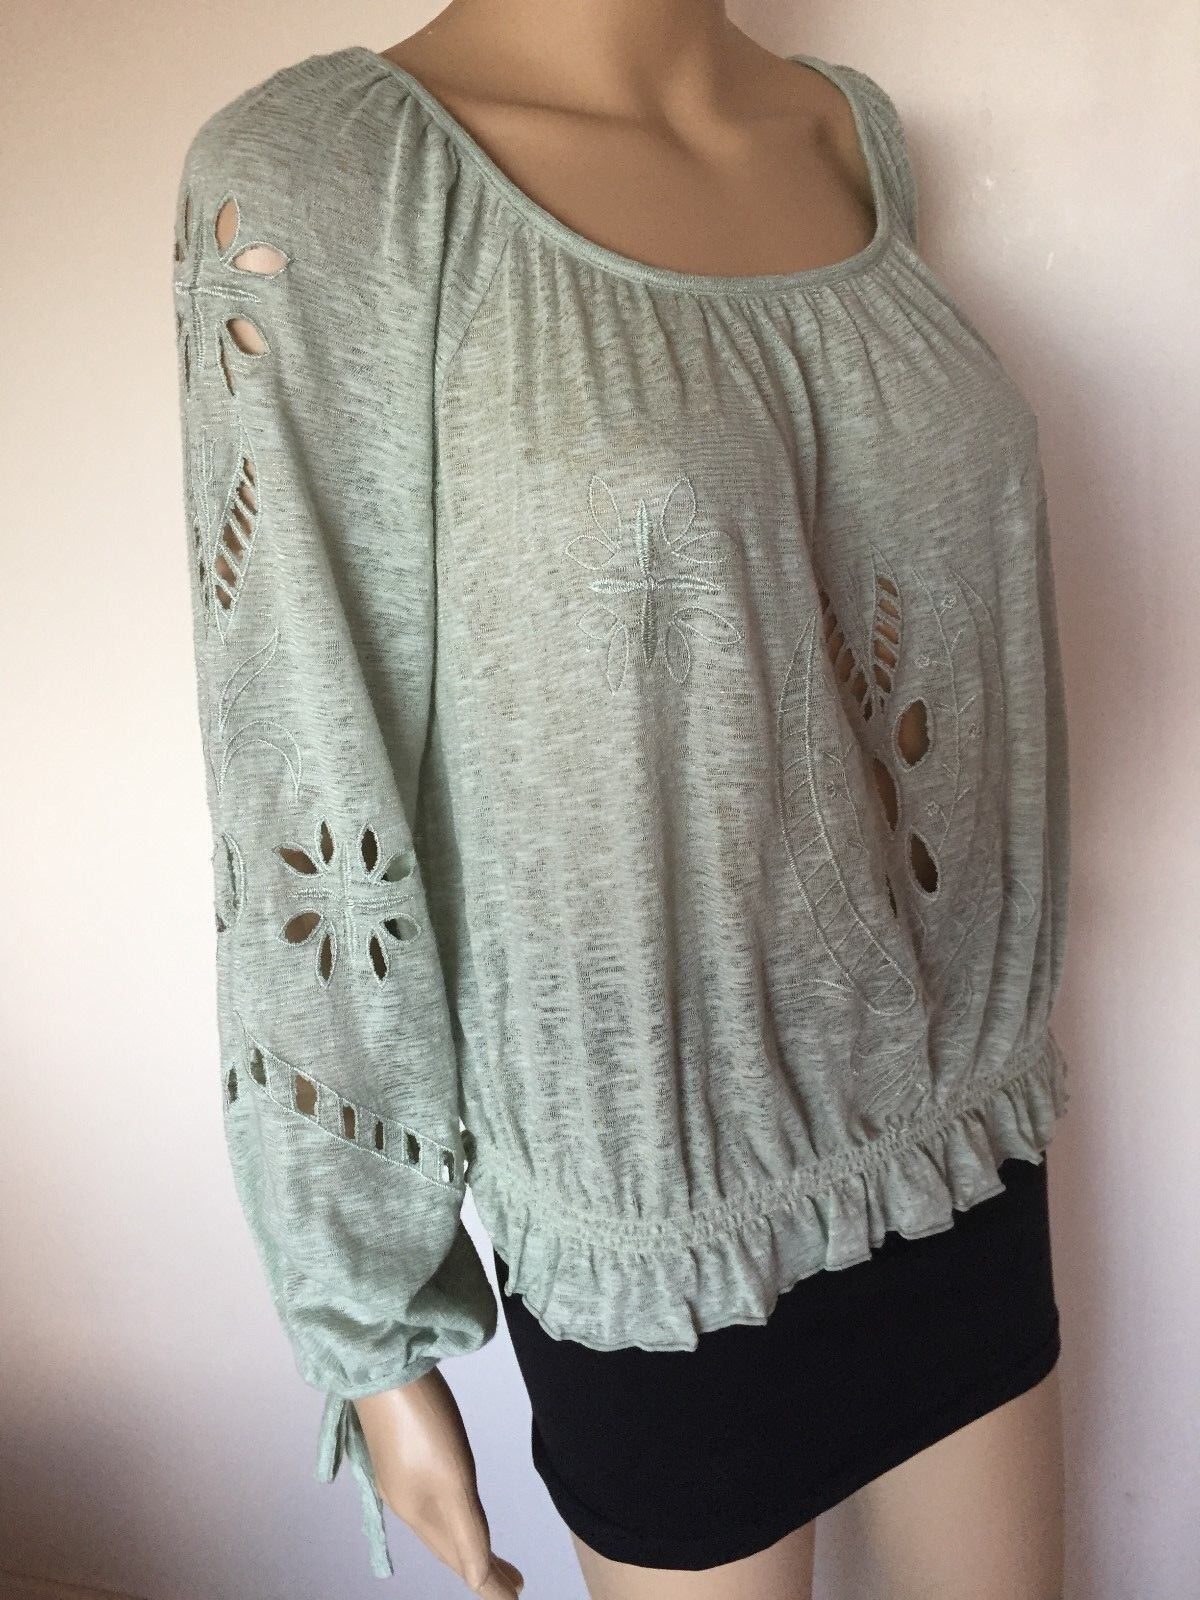 New Free People top blouse long sleeve pale Grün cotton poly embroiderot XS